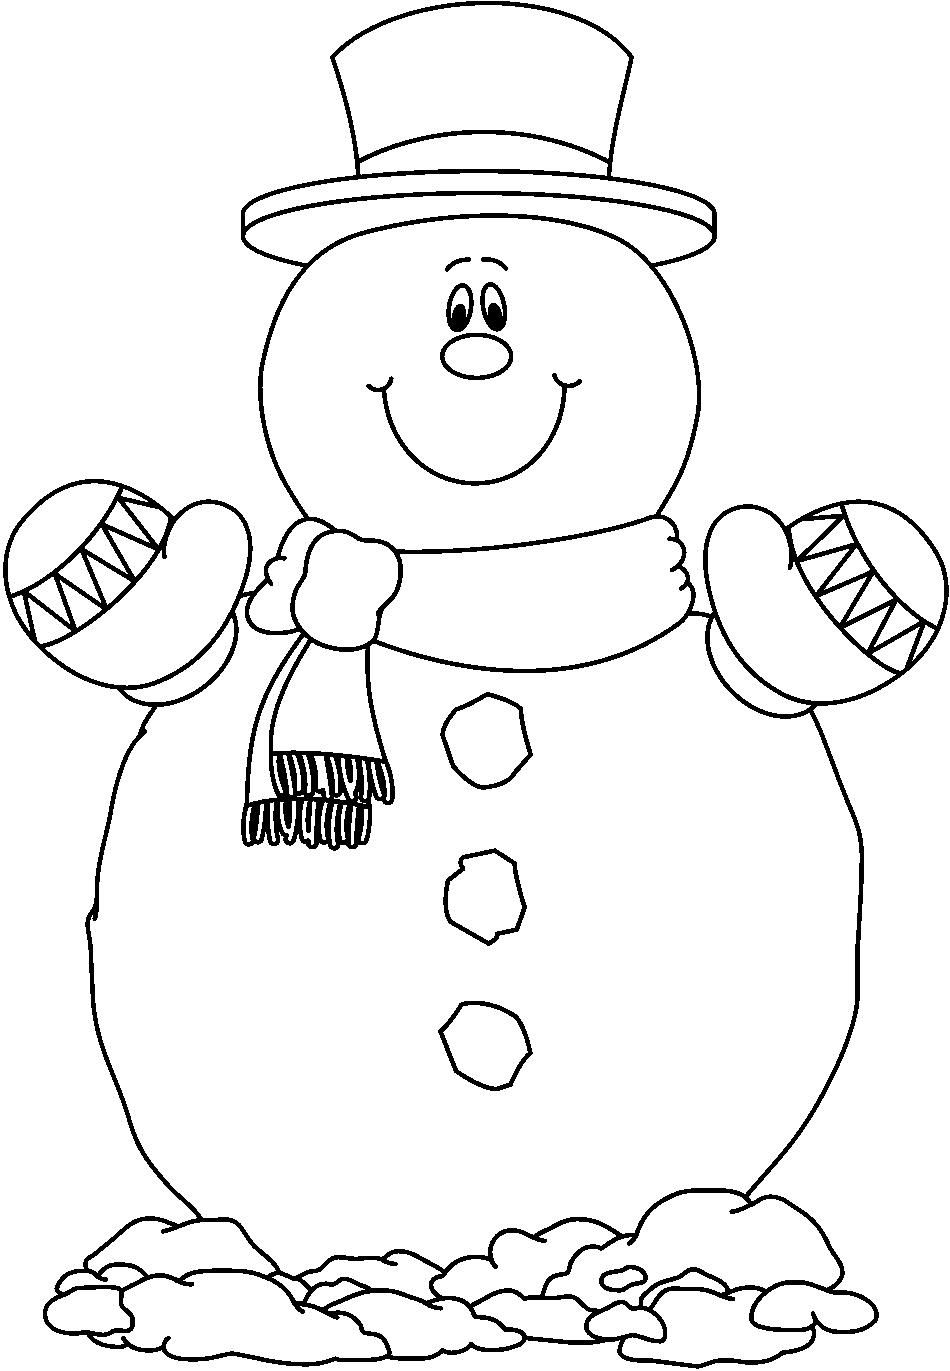 Snowman Emb Christmas 8 Pinterest Snowman Winter And Craft